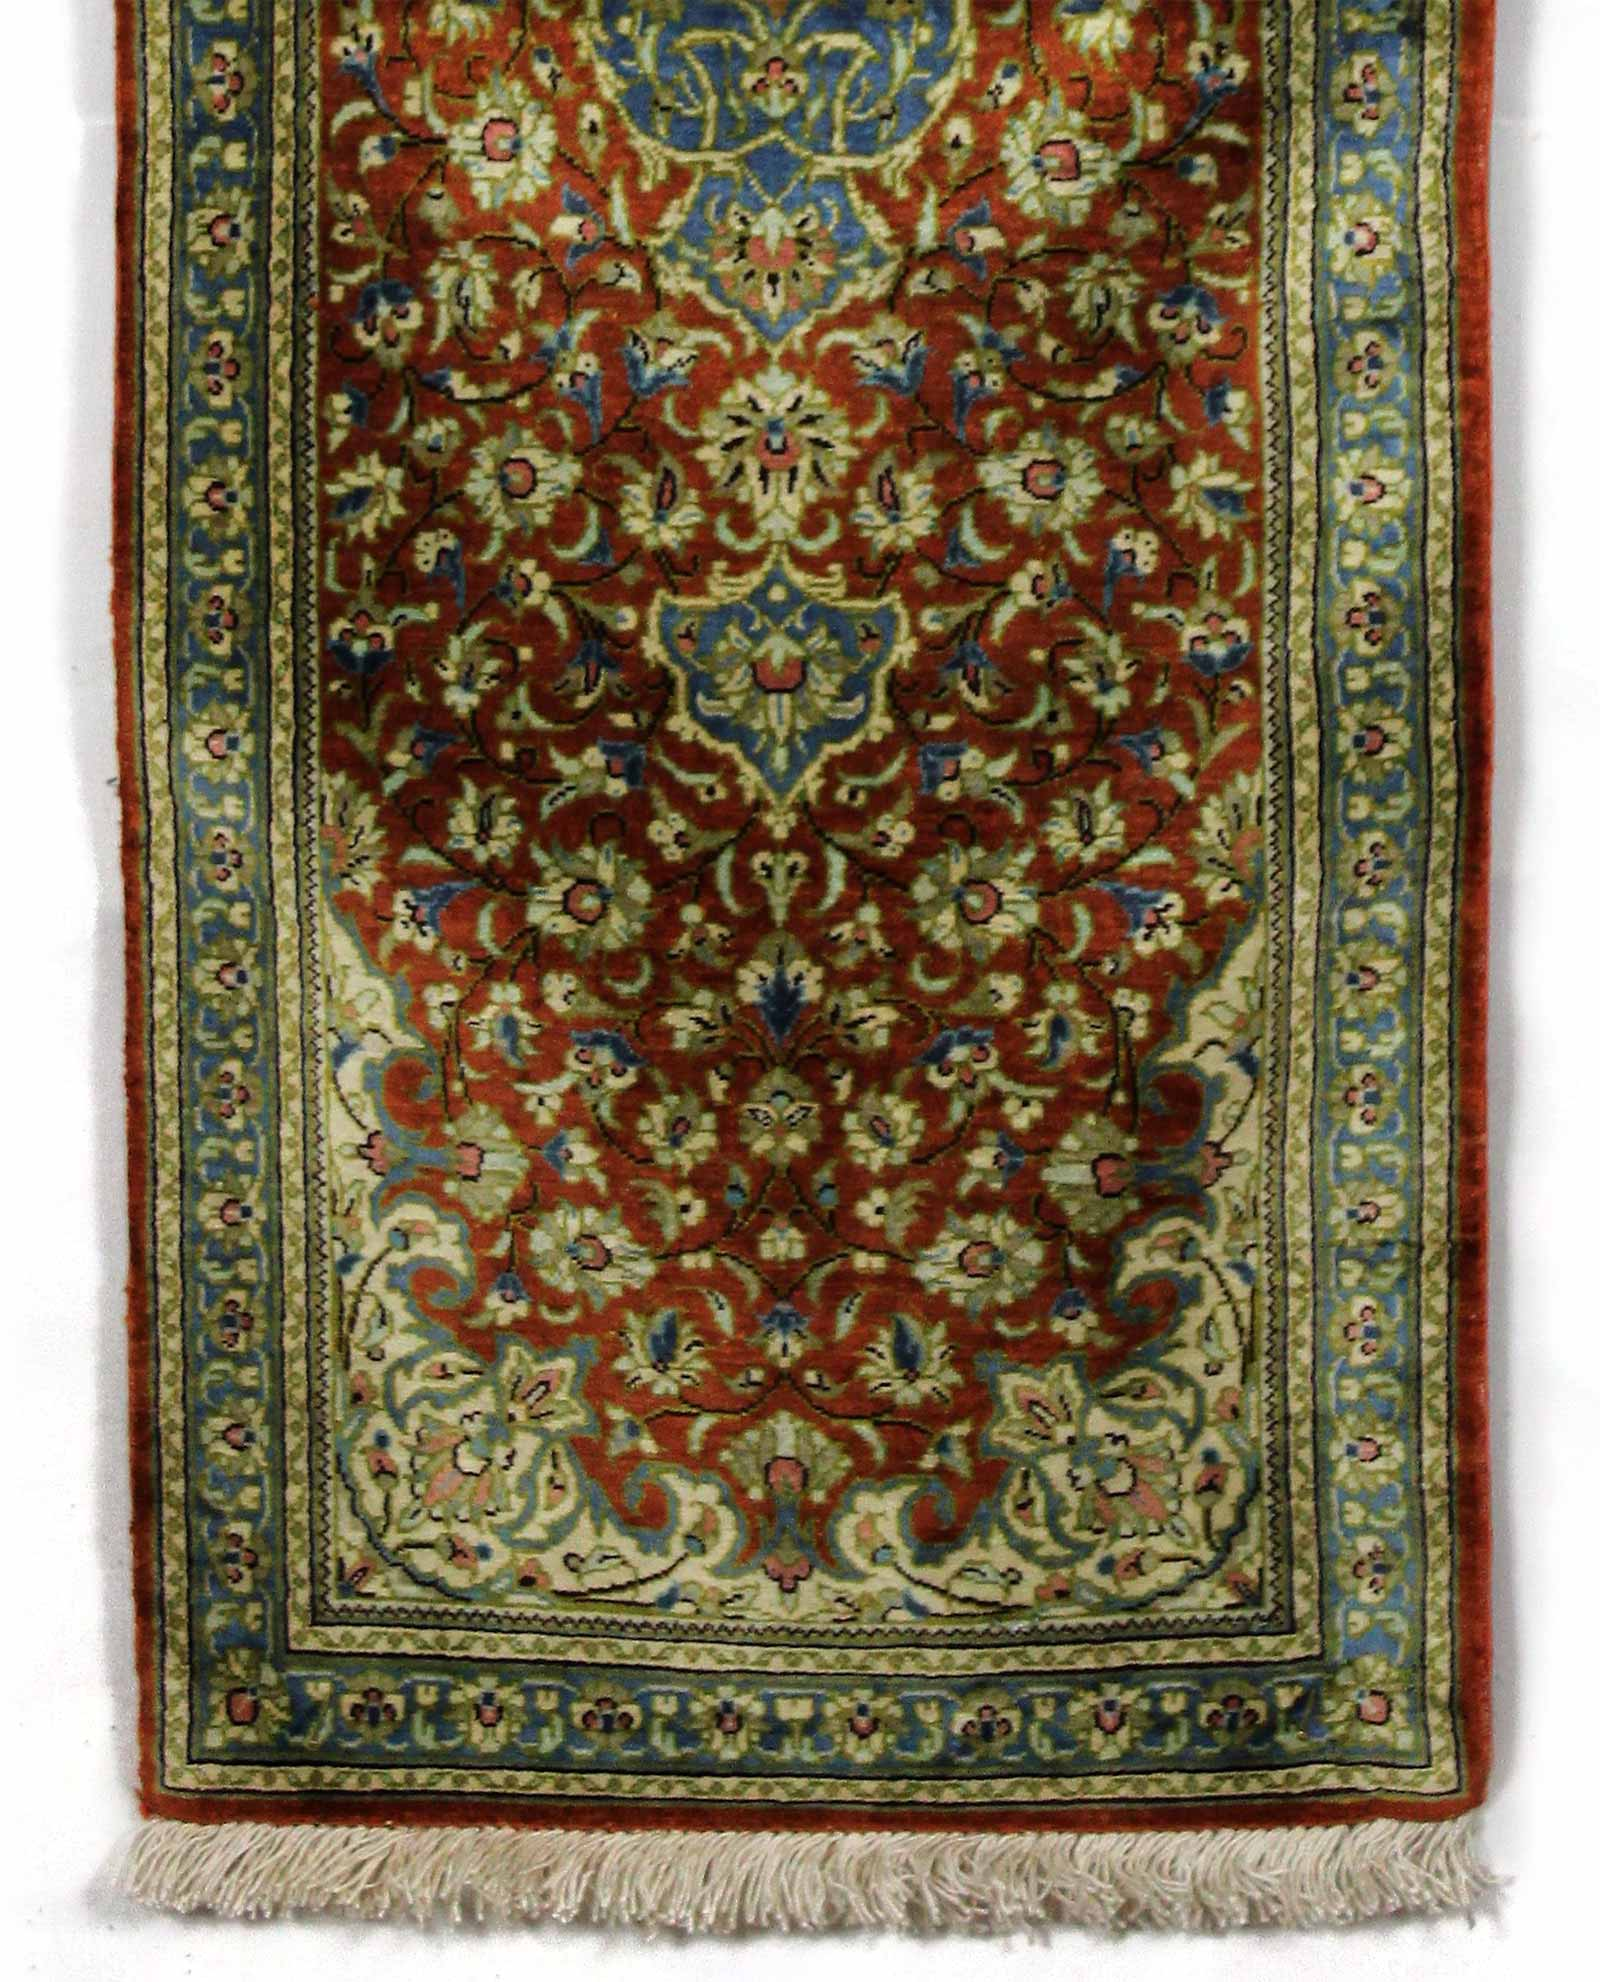 tapis persan ghom soie 13467 iranian carpet. Black Bedroom Furniture Sets. Home Design Ideas